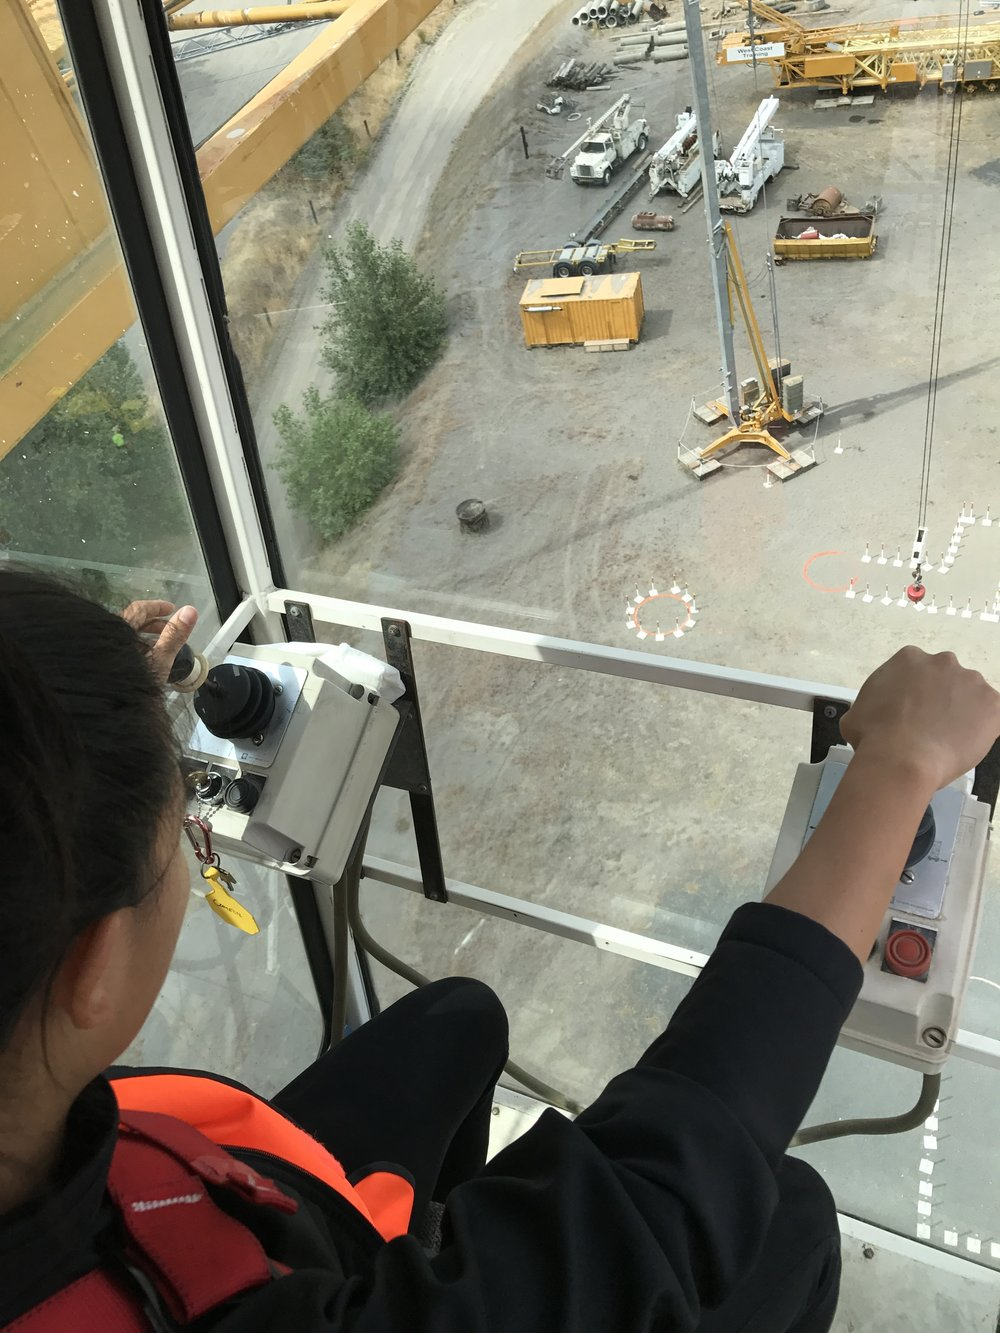 Yes, that is me operating the 100-foot crane. Watch out!